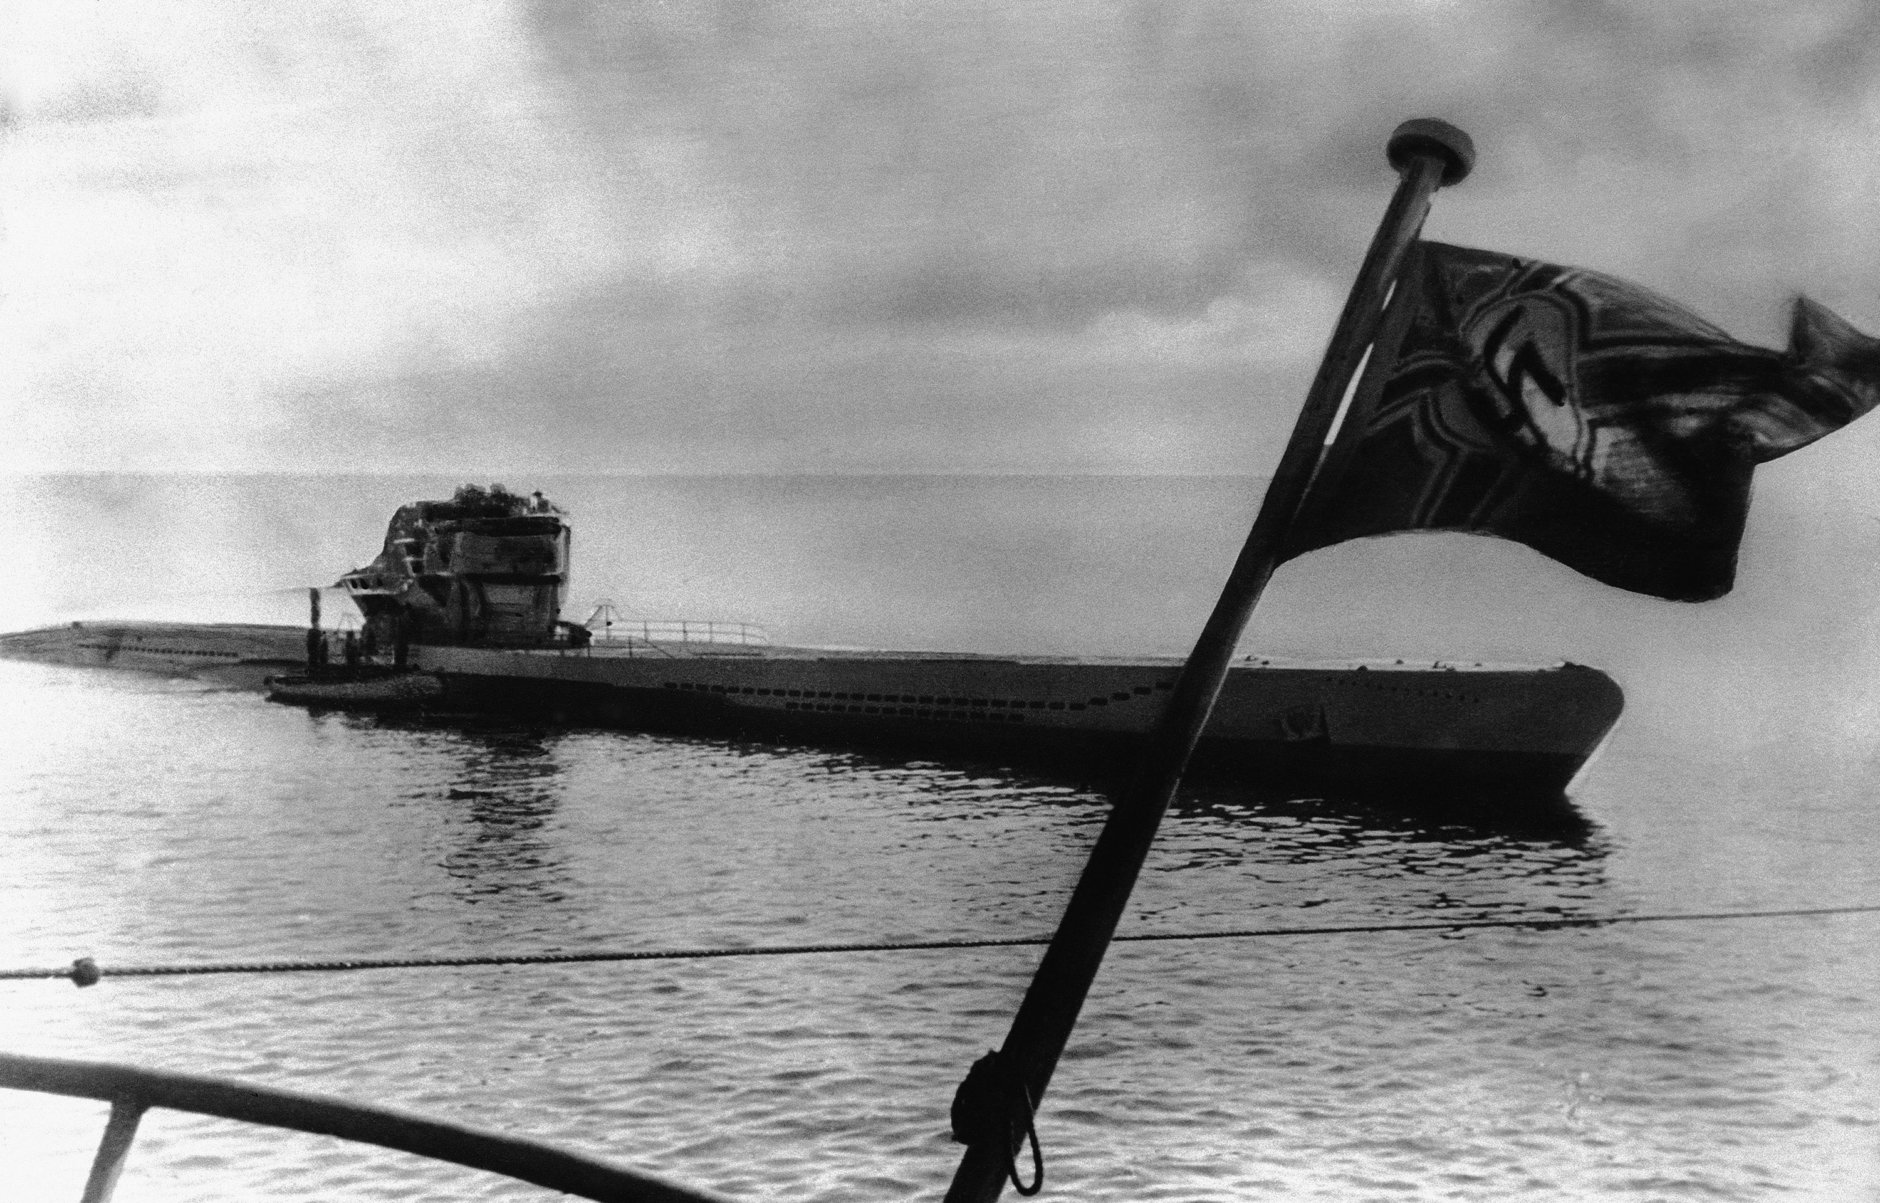 A new German U-boat returning from sea trials  on Oct. 27, 1943. (AP Photo)